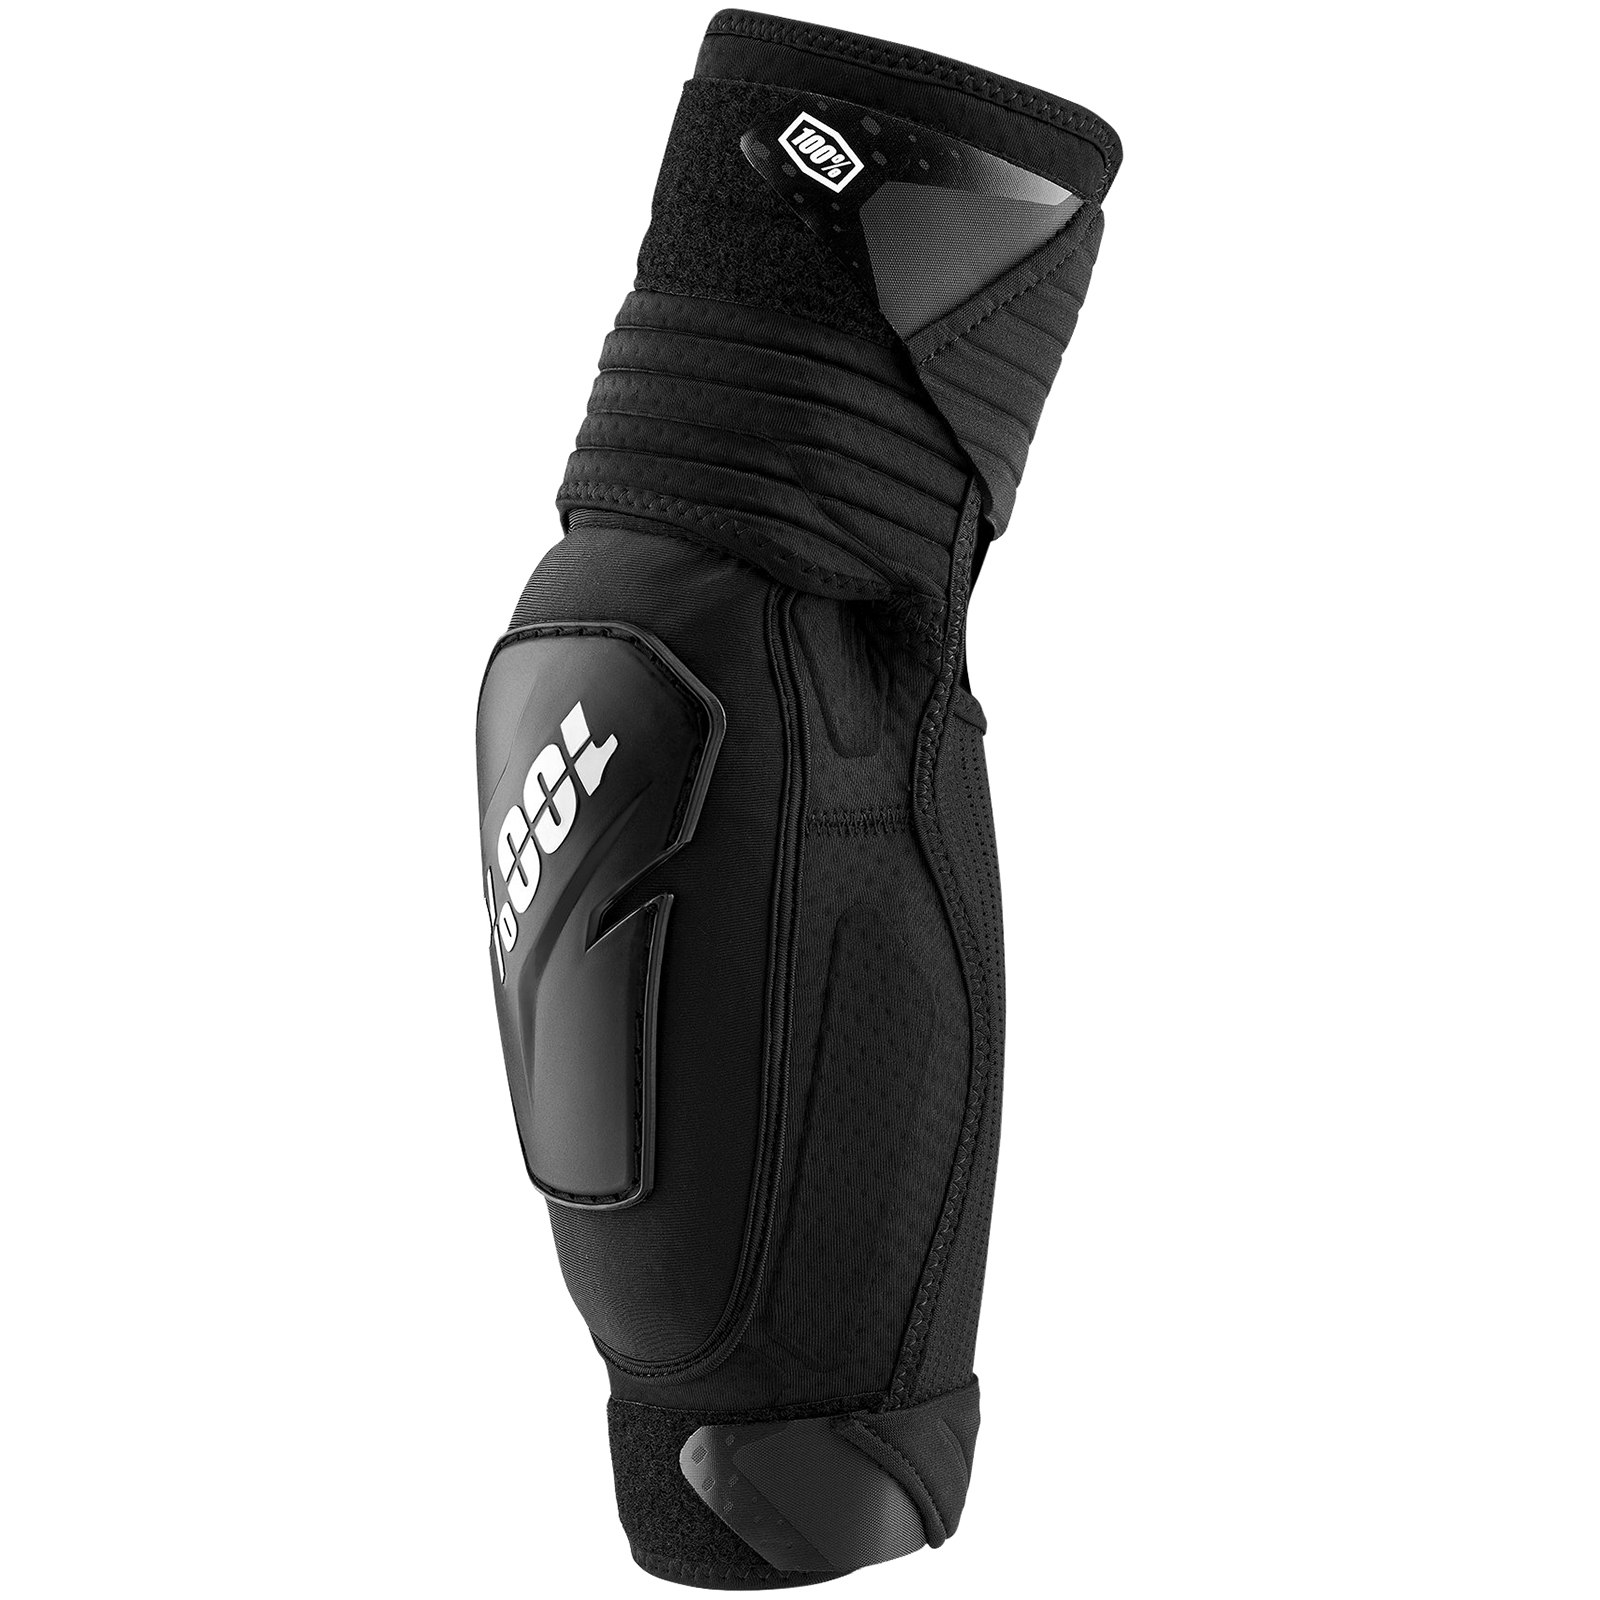 100% Fortis Elbow Guard - Black